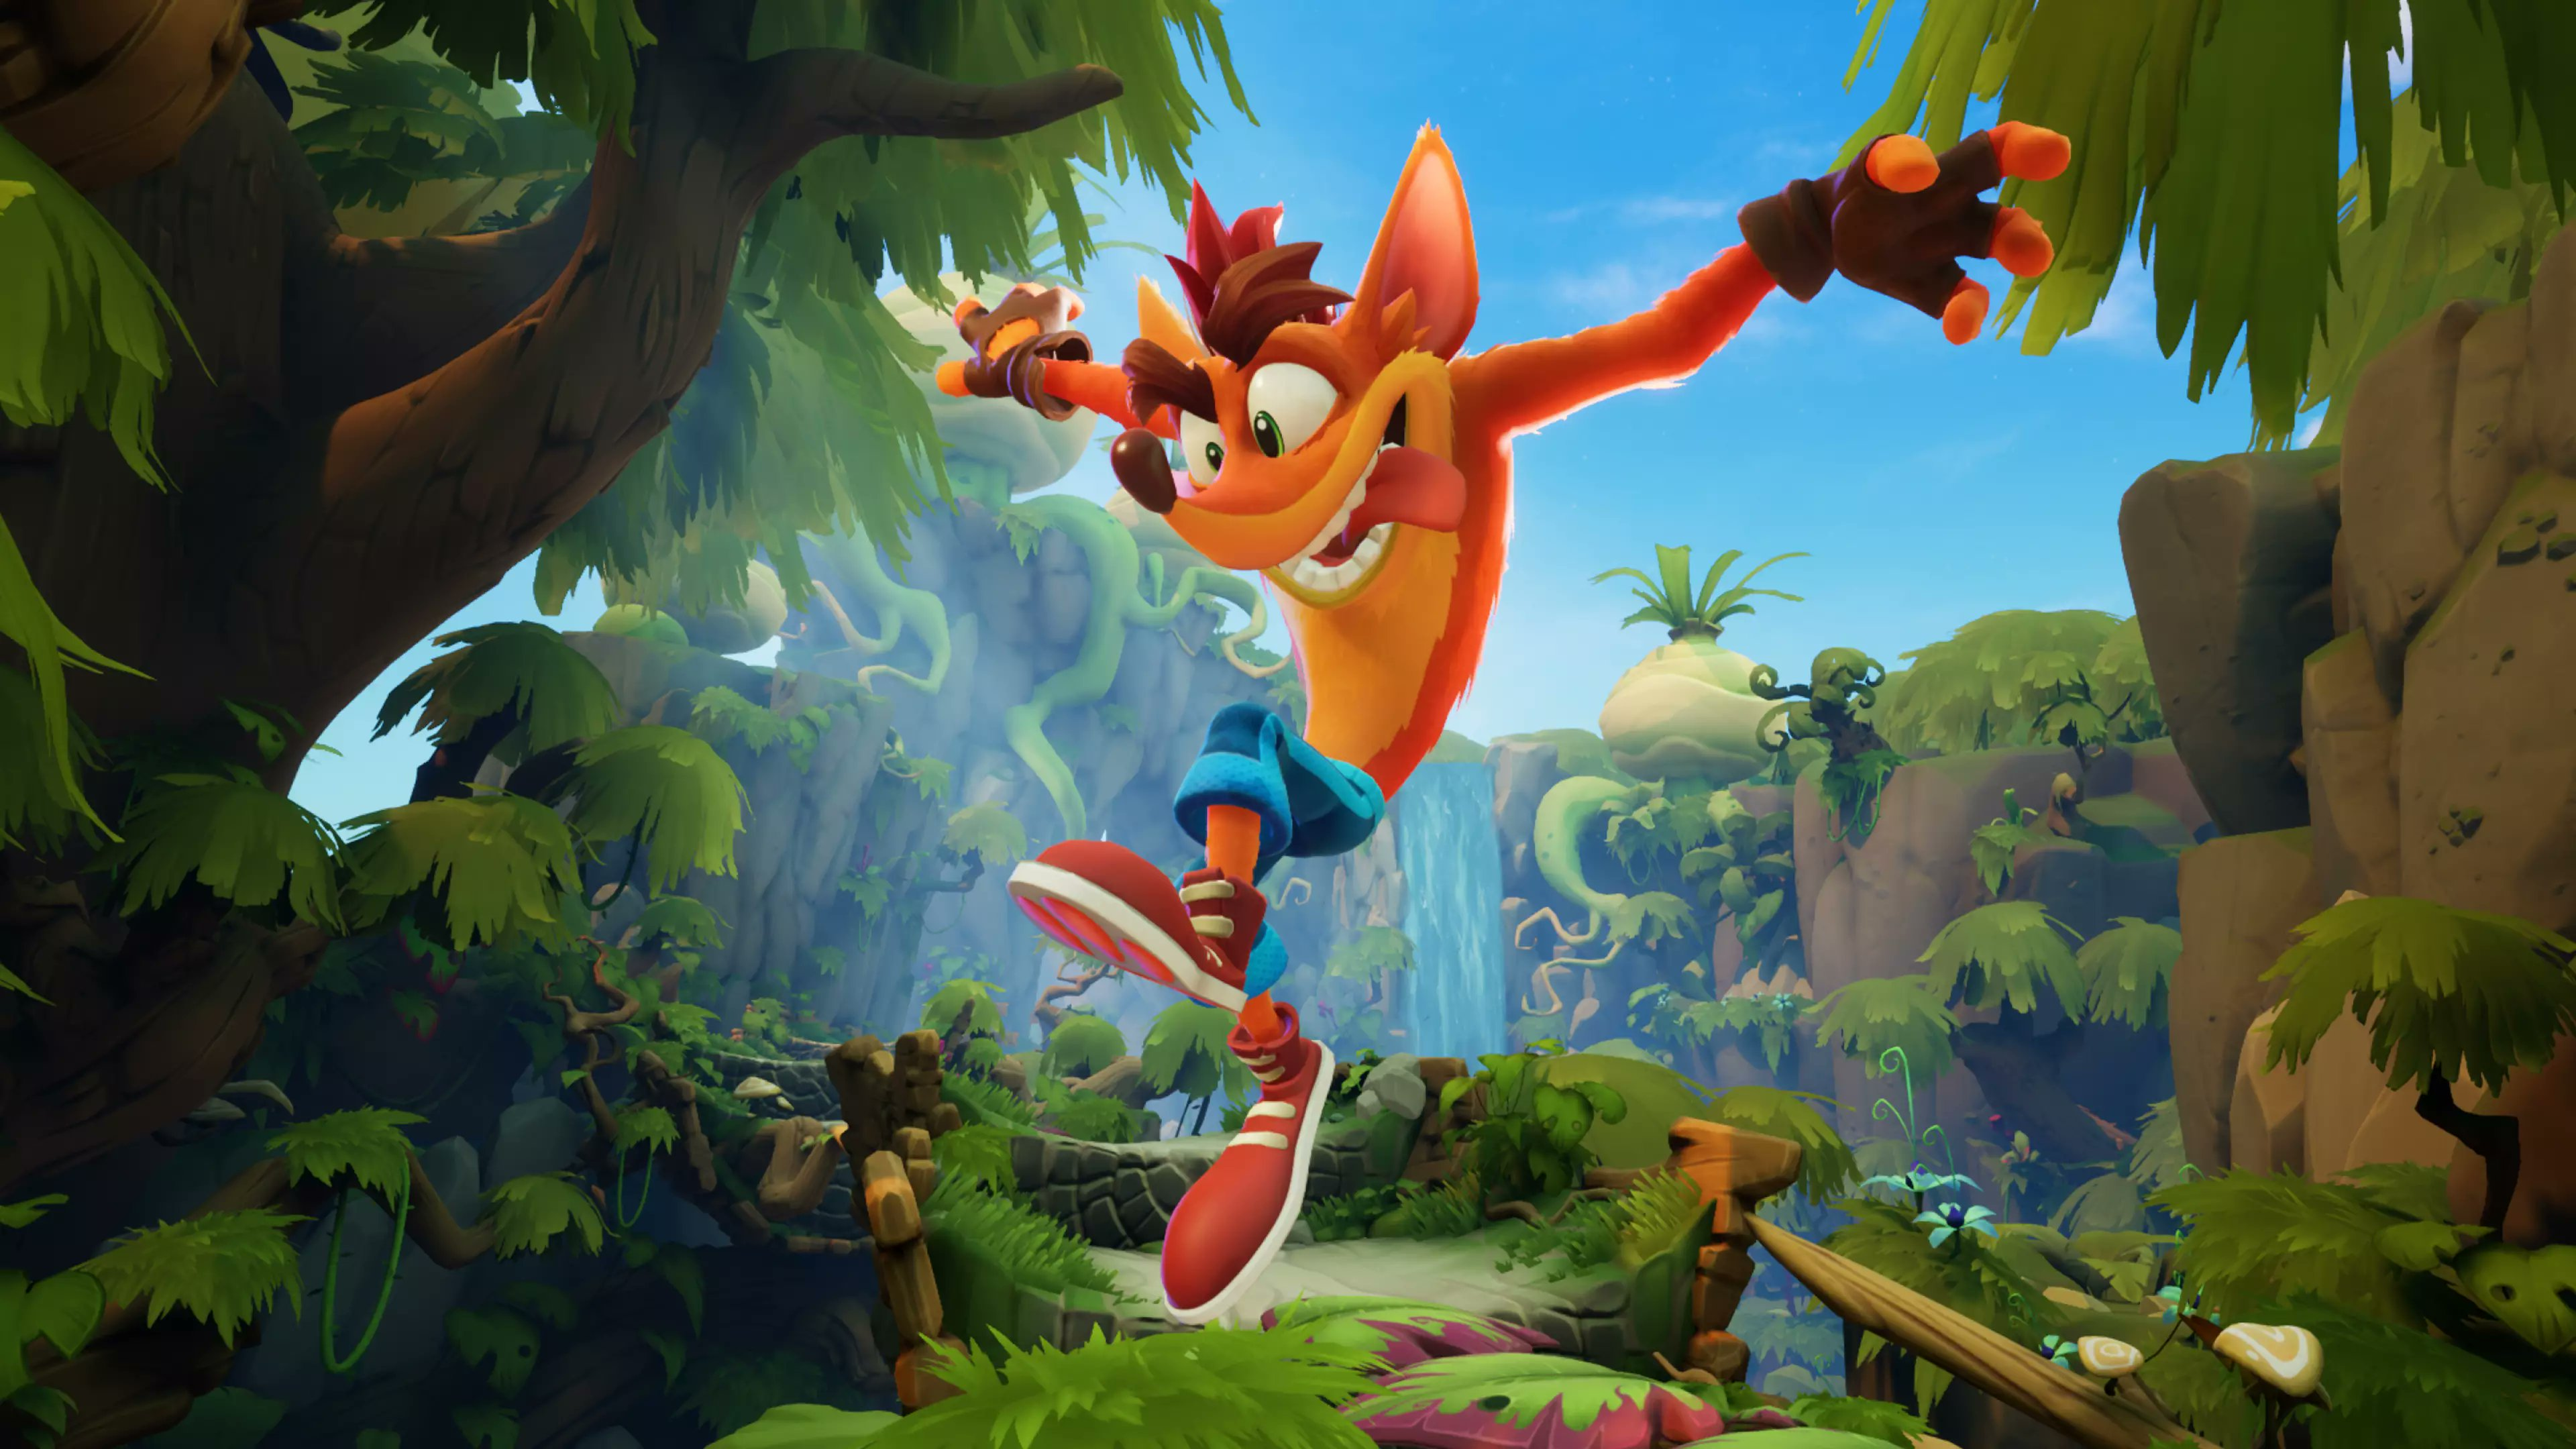 Платформеры, Xbox One, Crash Bandicoot 4: It's About Time, PlayStation 4, Crash Bandicoot N.Sane Trilogy